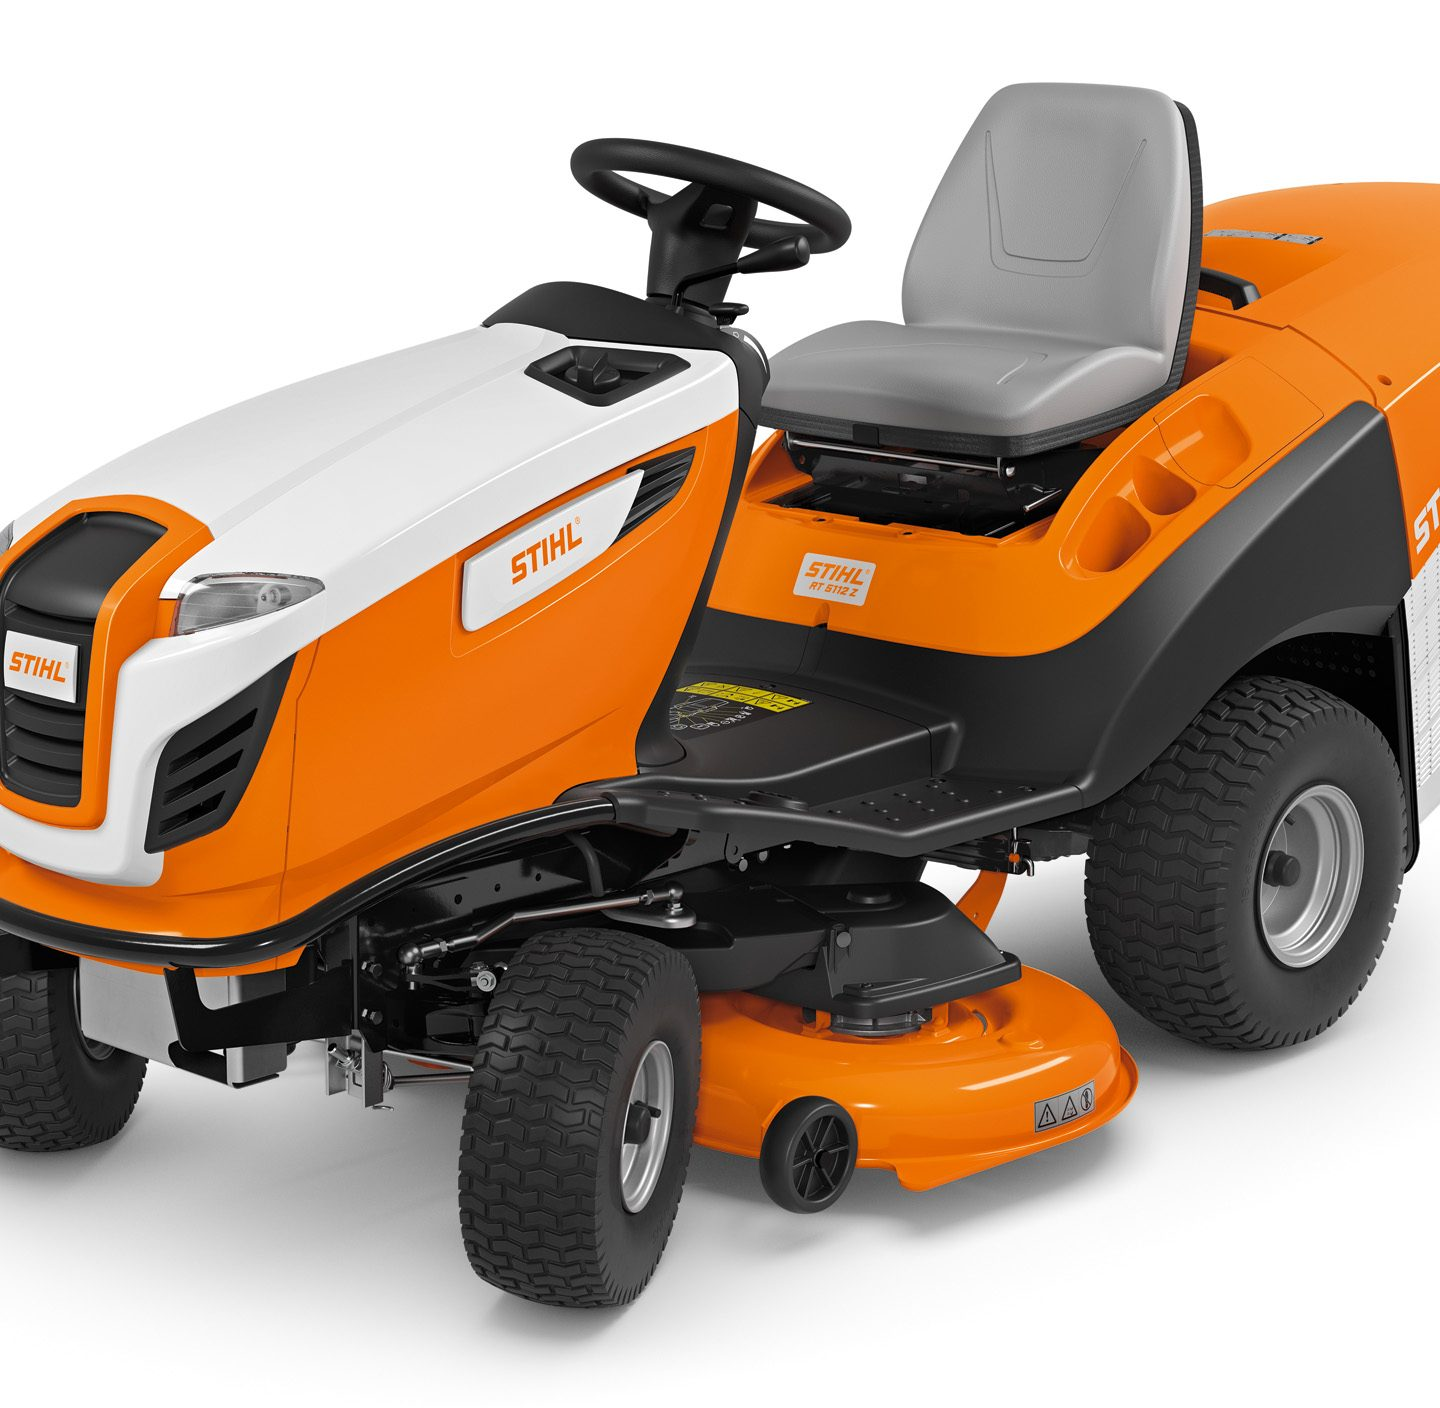 RT 5112 Z - HIGH PERFORMANCE LAWN TRACTOR WITH OUTSTANDING MOWING PERFORMANCE AND WIDE DECK